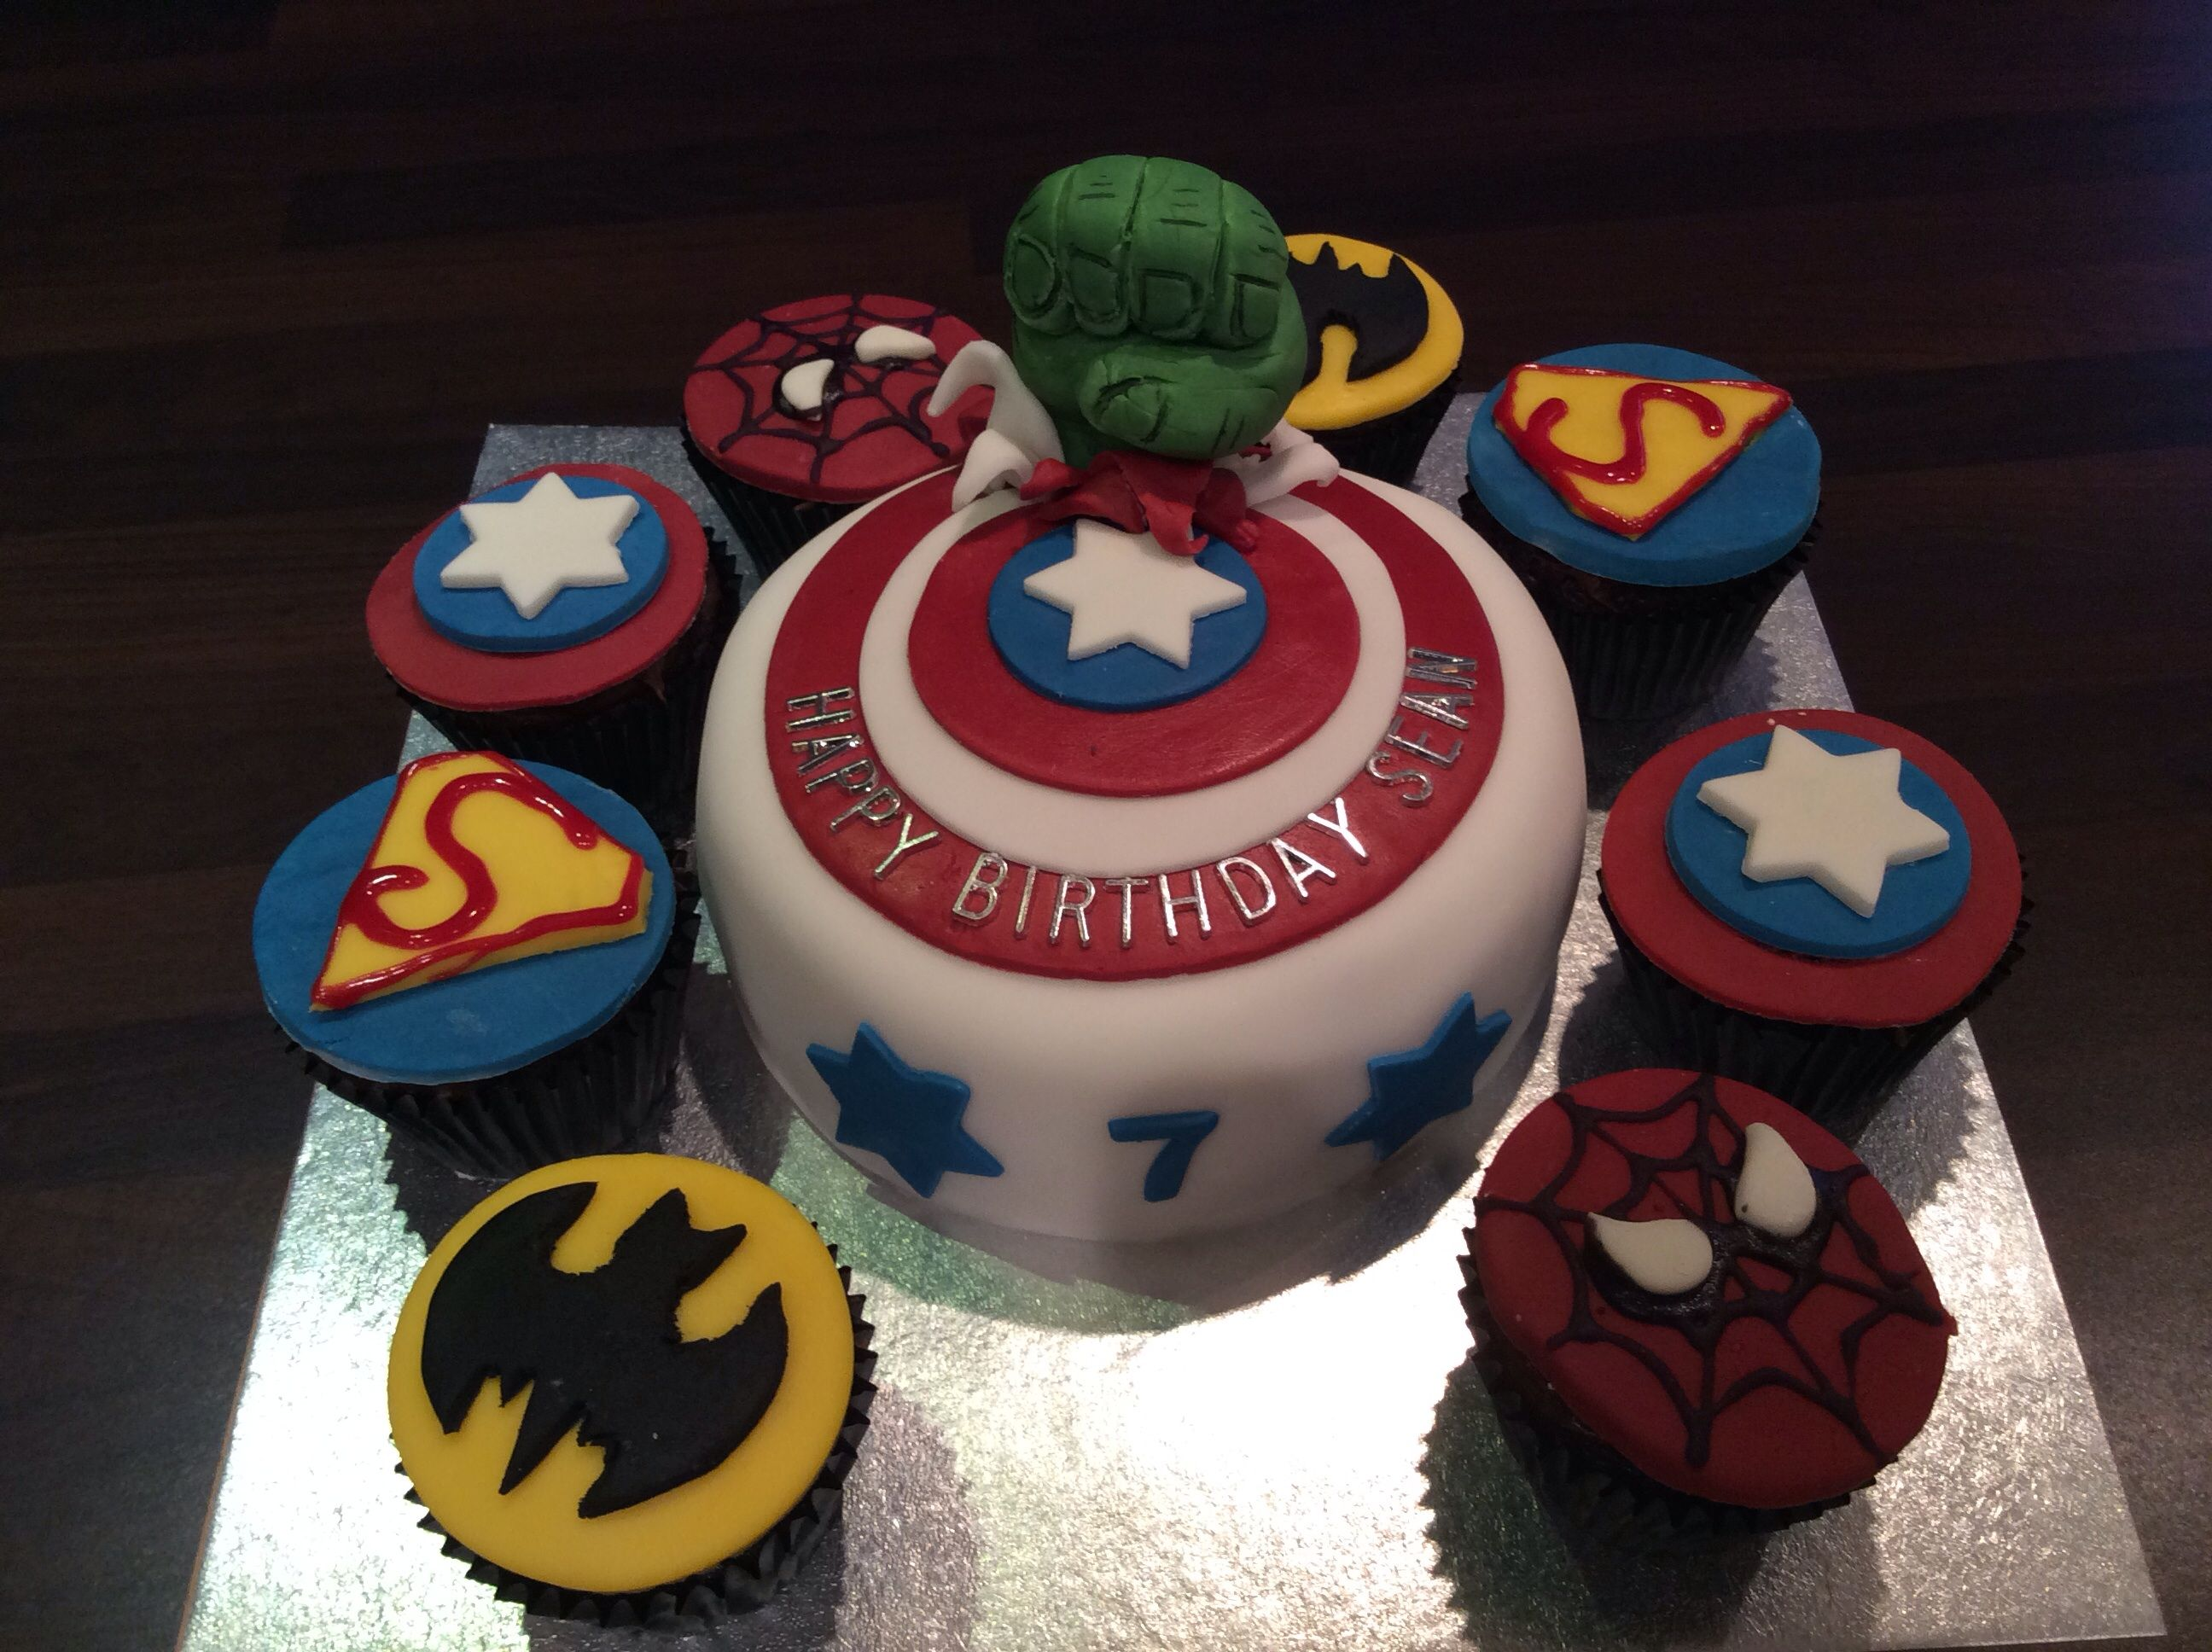 Birthday Cakes Hulk Smash birthday cake and Avengers cupcakes